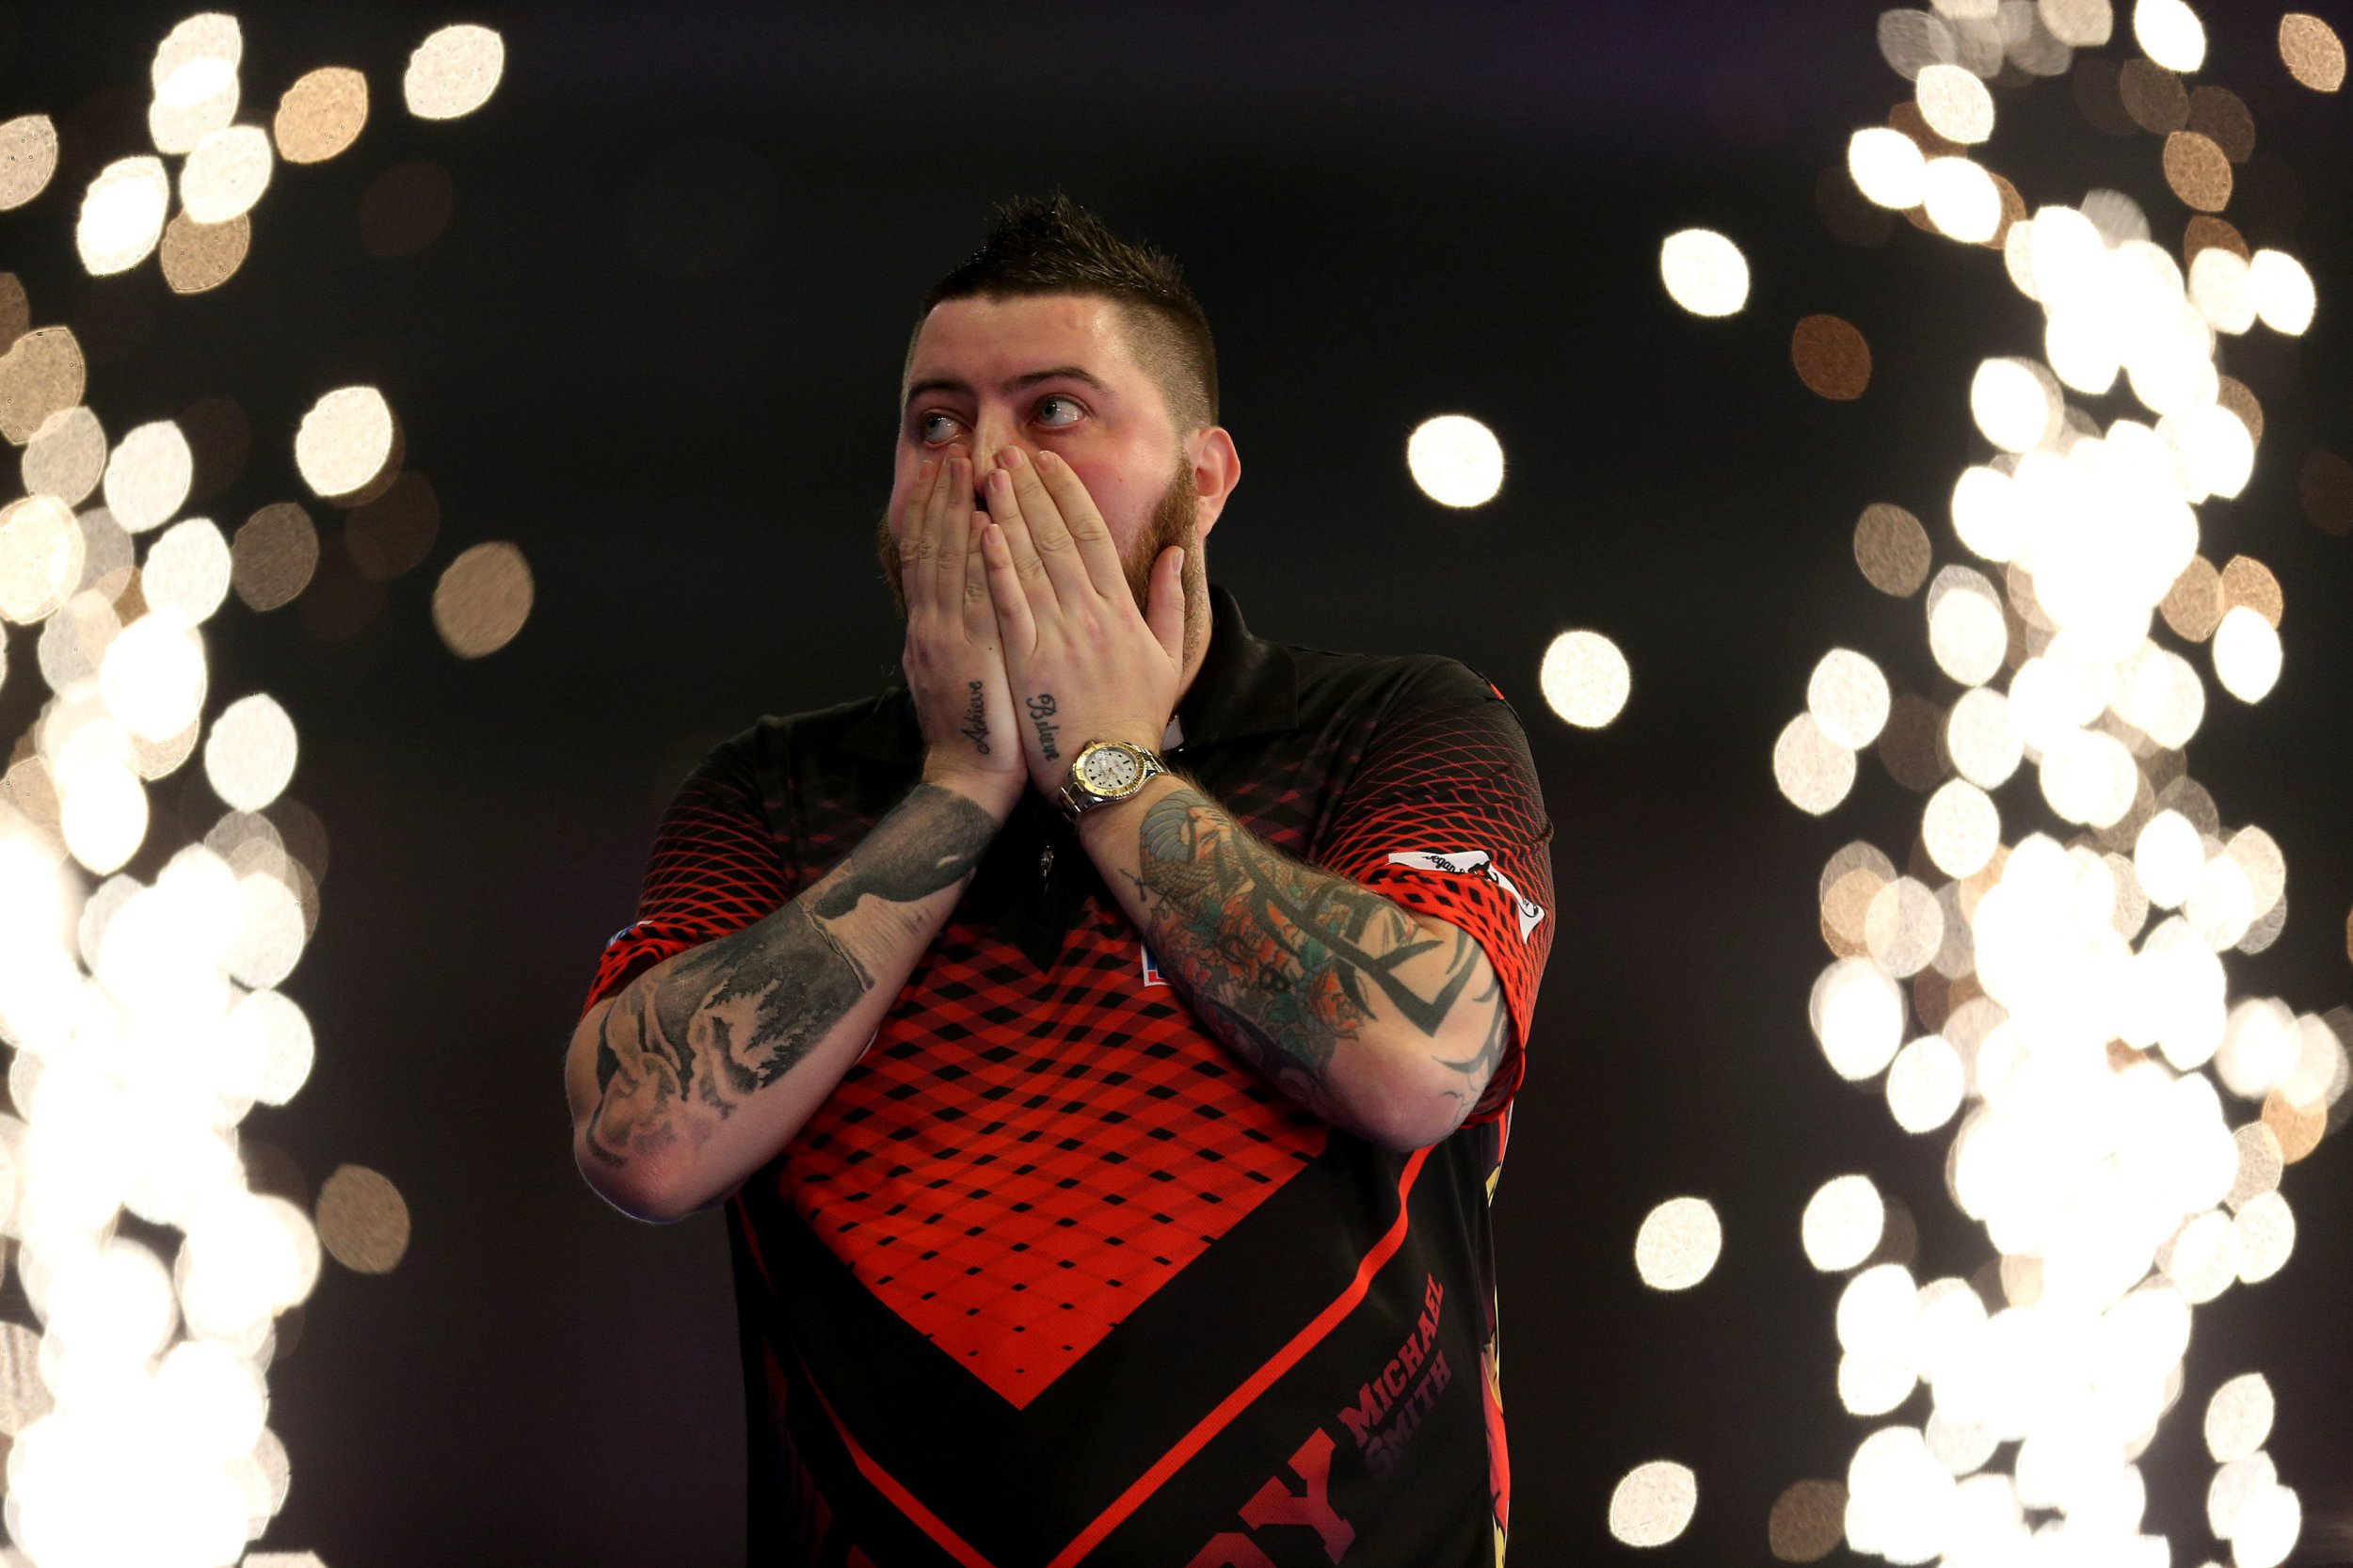 Michael Smith holds off Nathan Aspinall to reach PDC World Championship final after superb semi